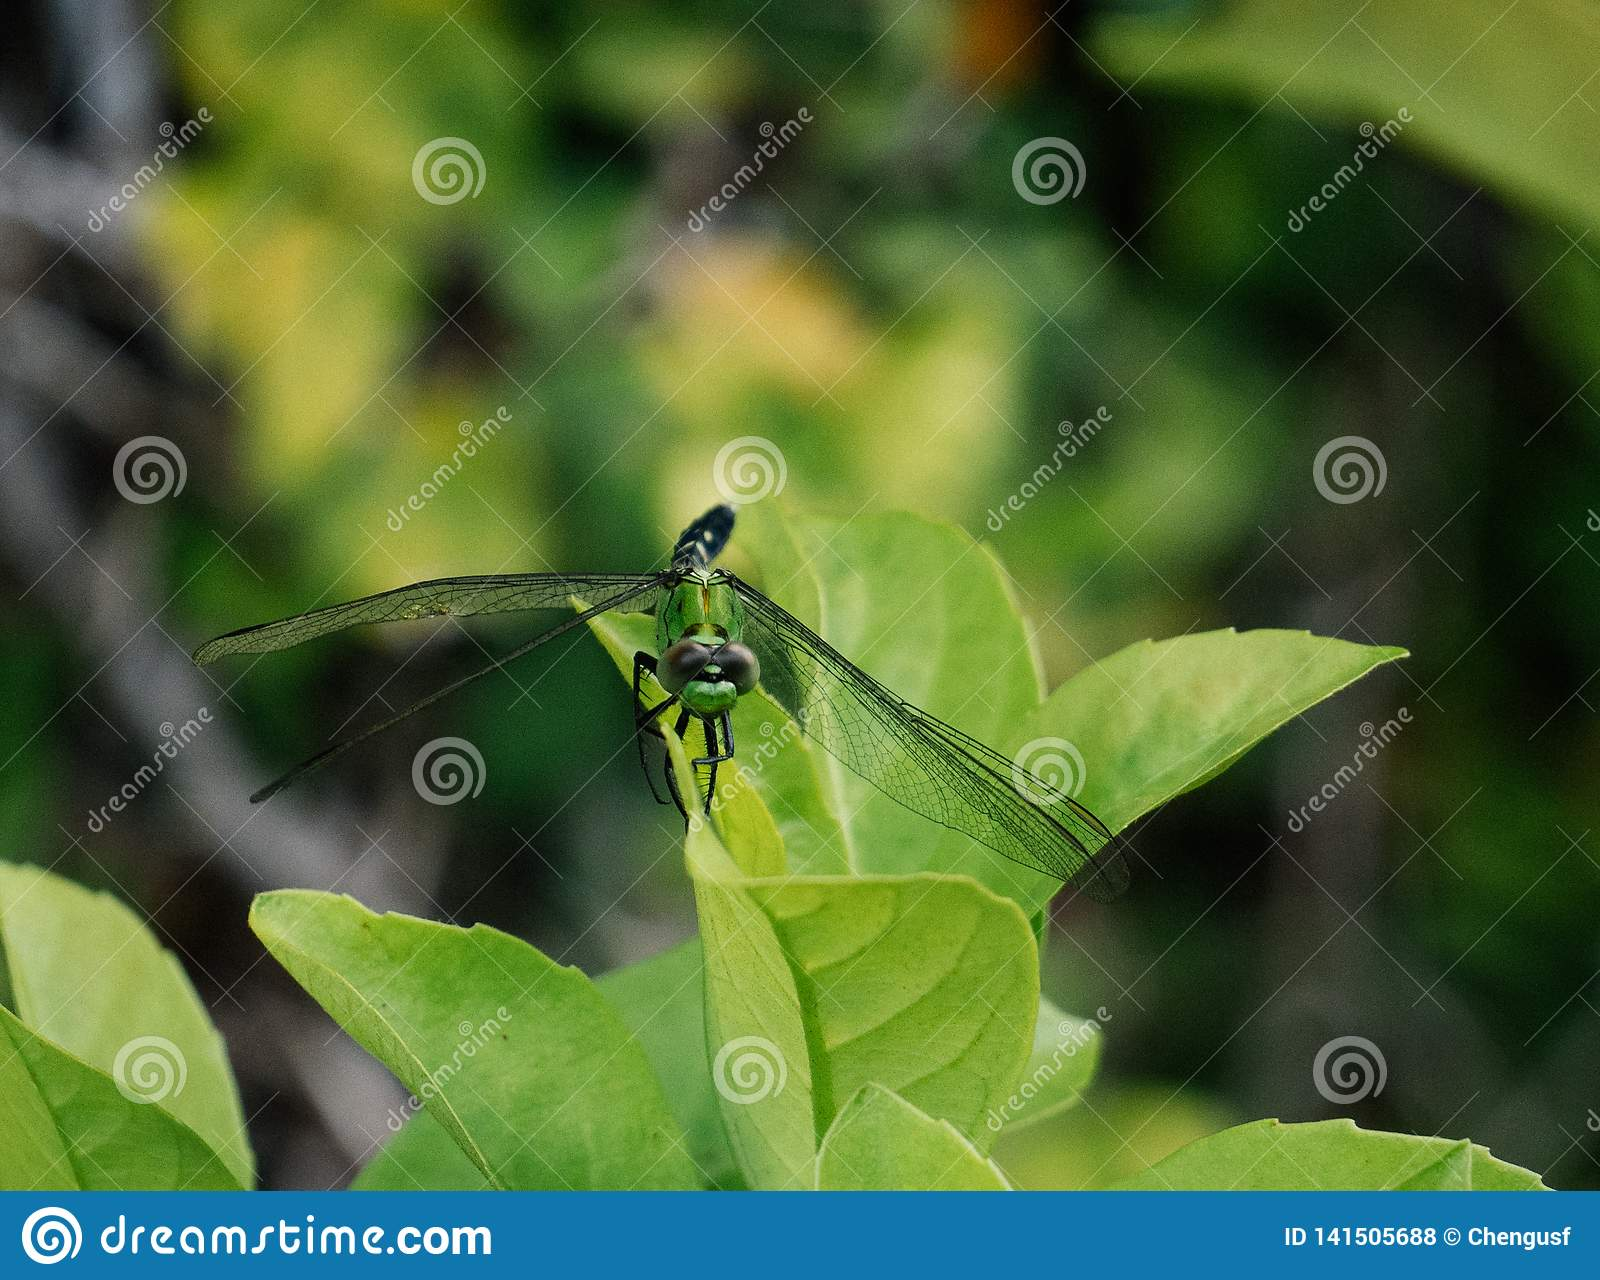 A picture of beautiful green dragonfly